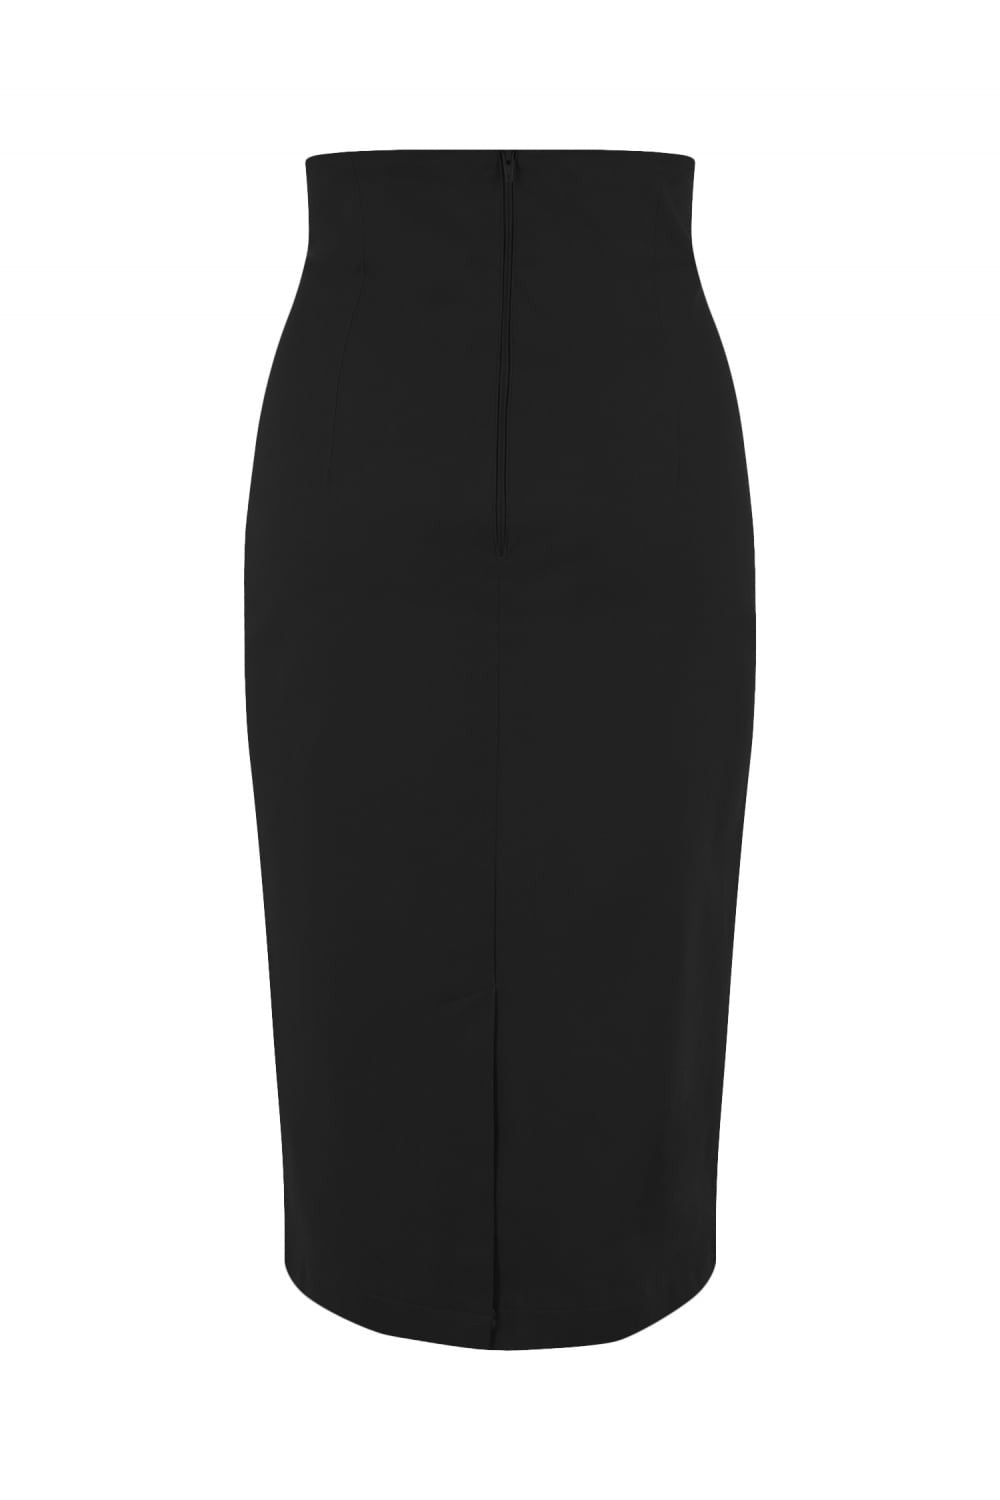 The Penelope Pencil Skirt - SOLD OUT!